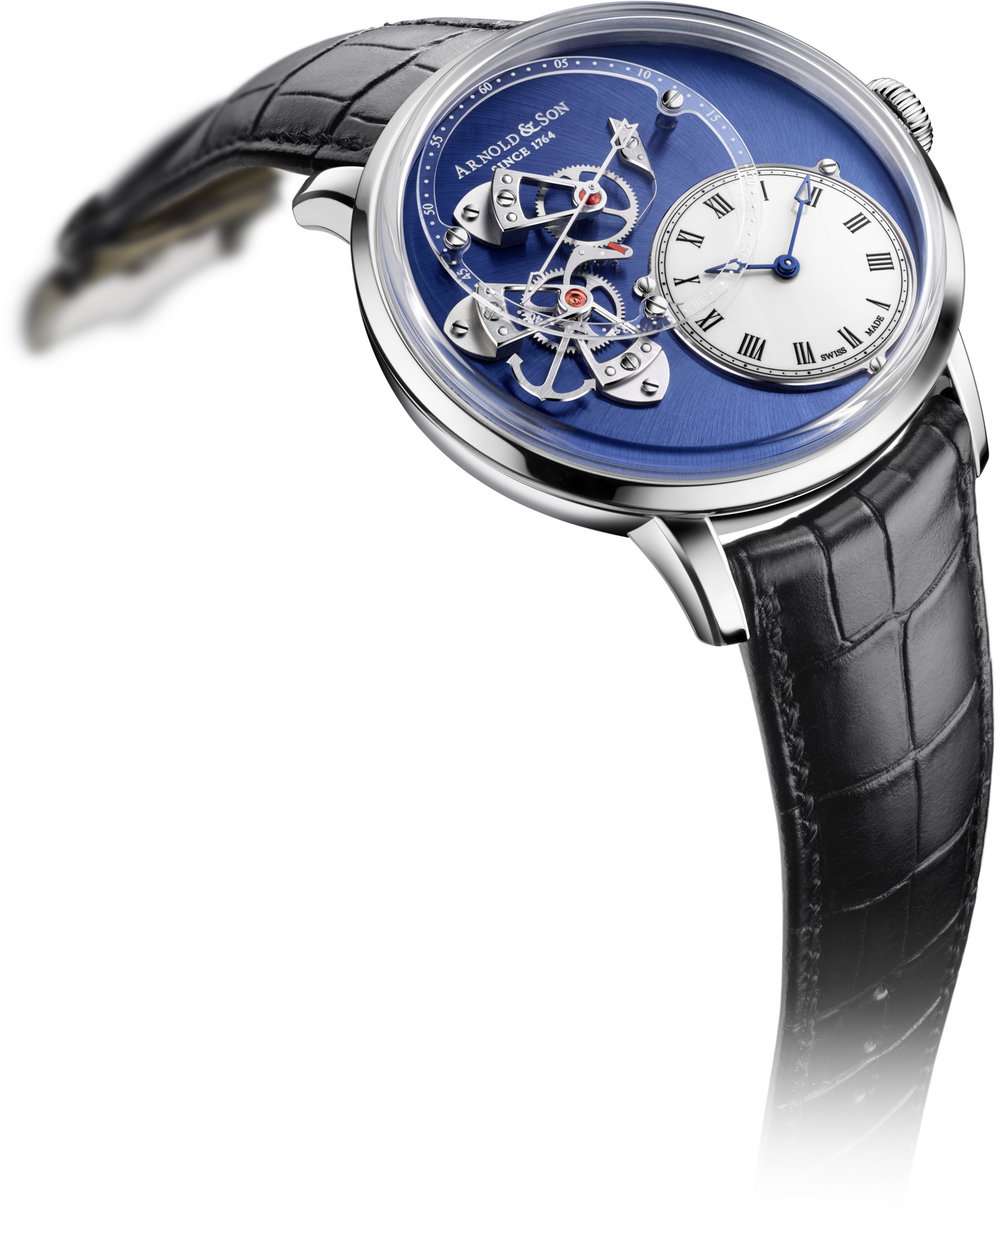 Arnold & Son DSTB Stainless Steel - blue_emo_hr.jpg